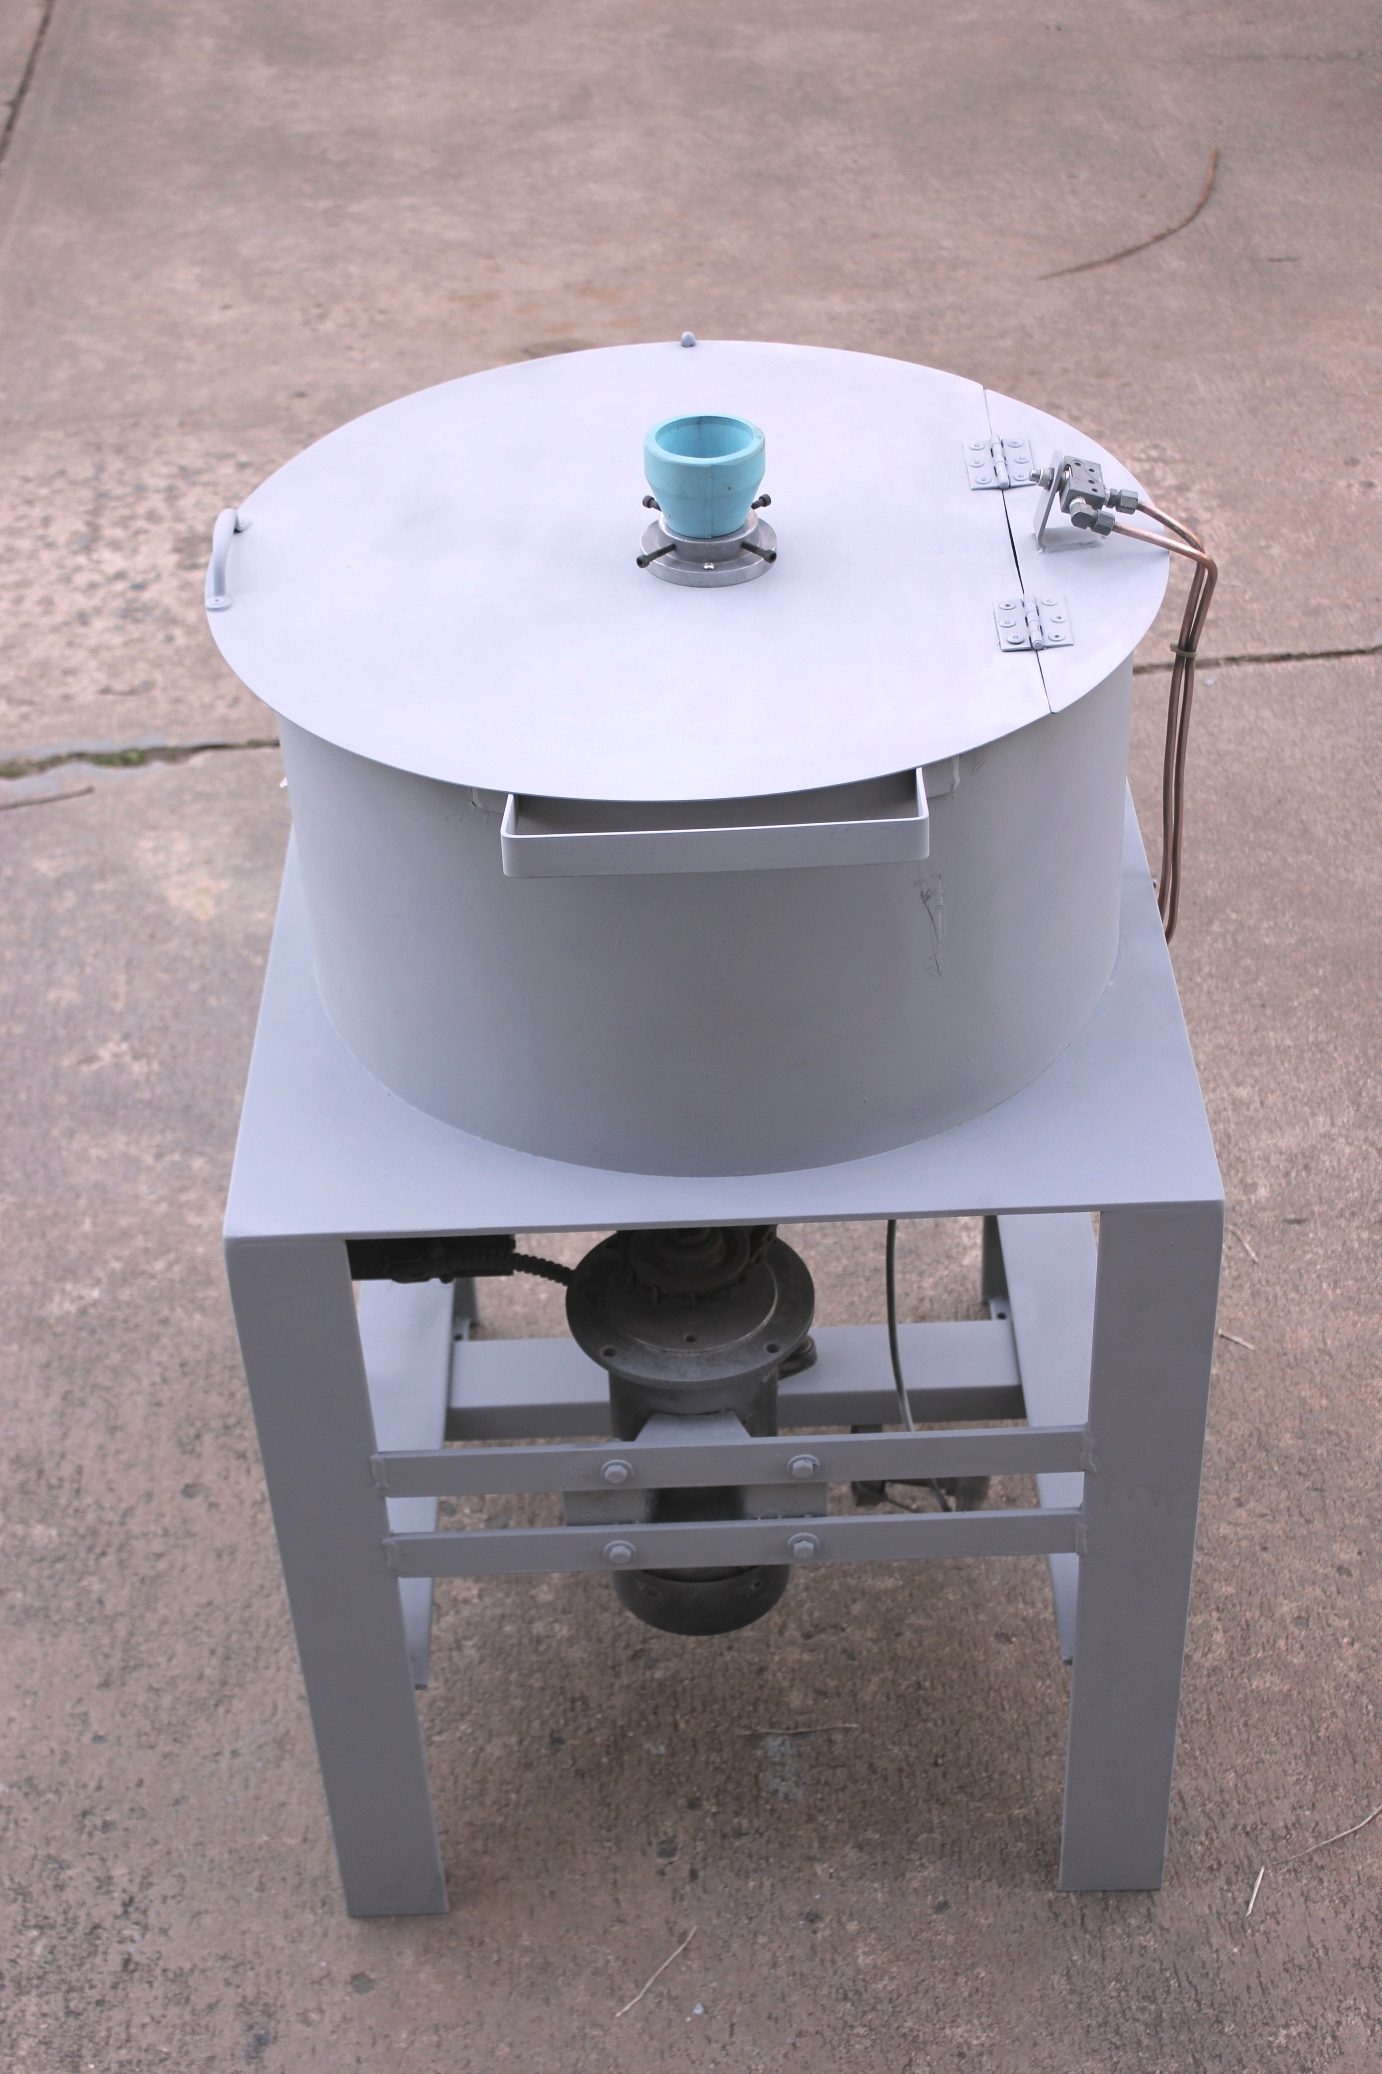 spin cast machine for sale